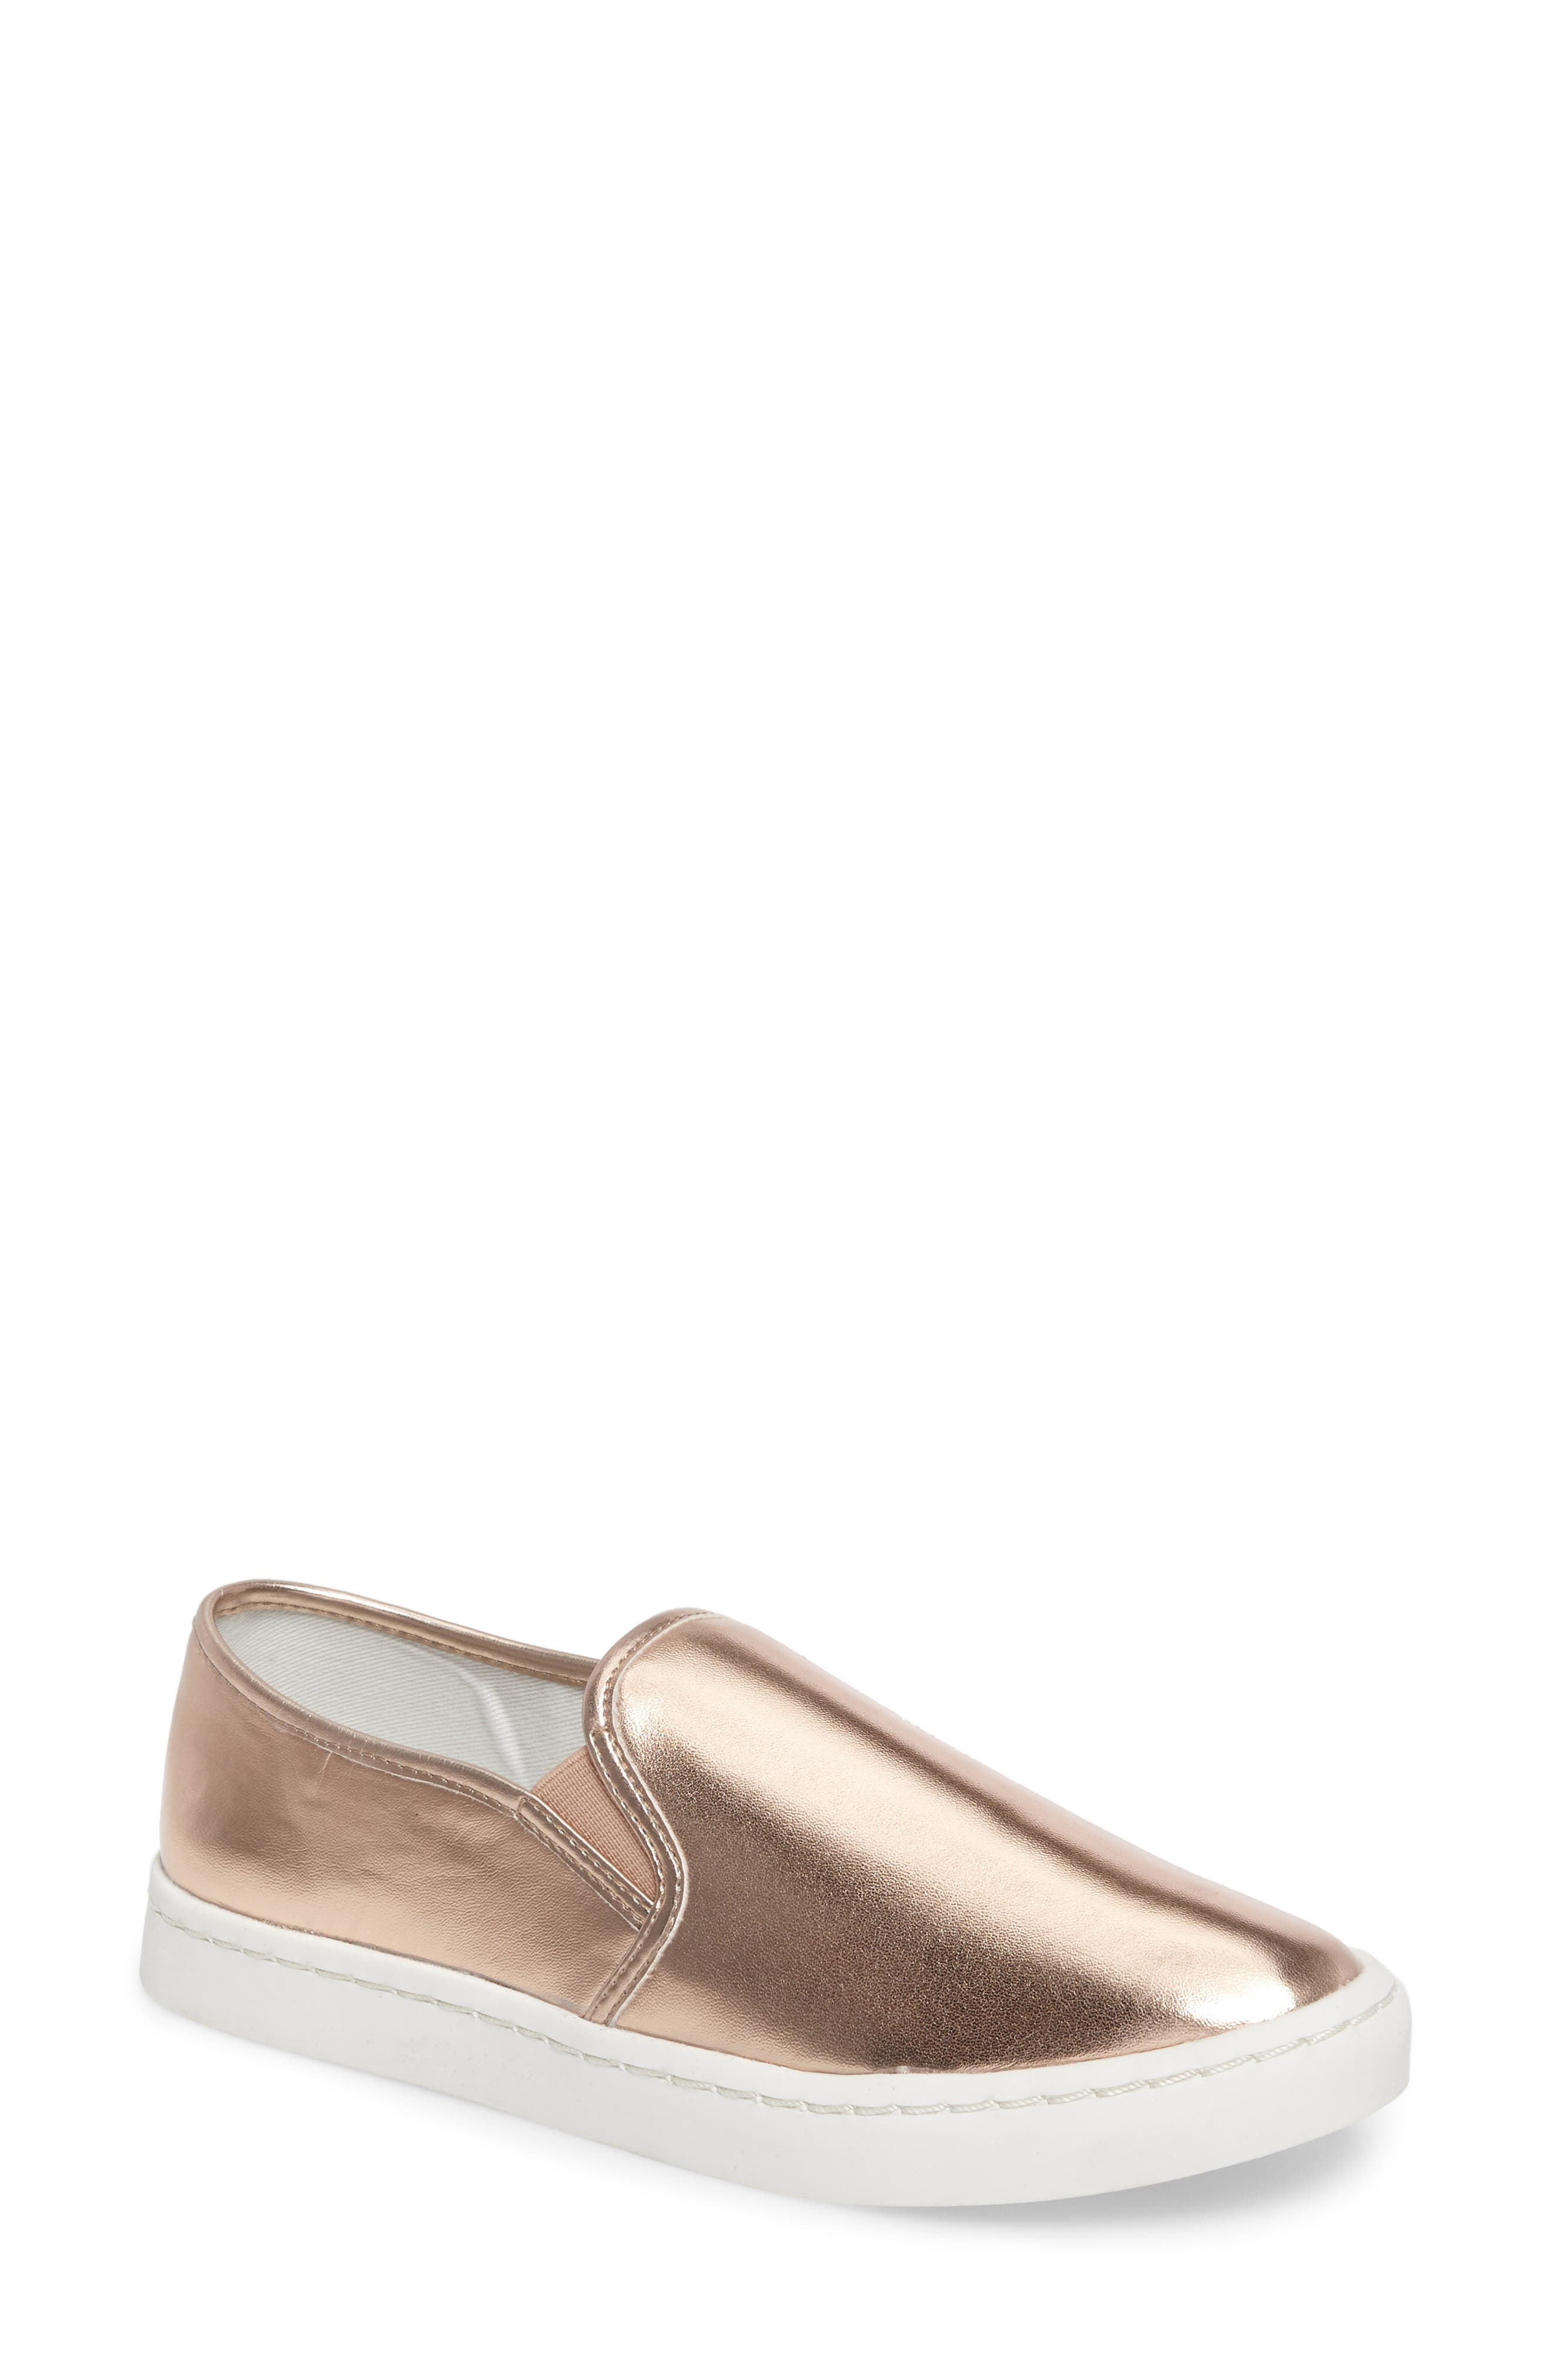 'Twiny' Slip-On Sneaker,                             Main thumbnail 1, color,                             Rose Gold Faux Leather